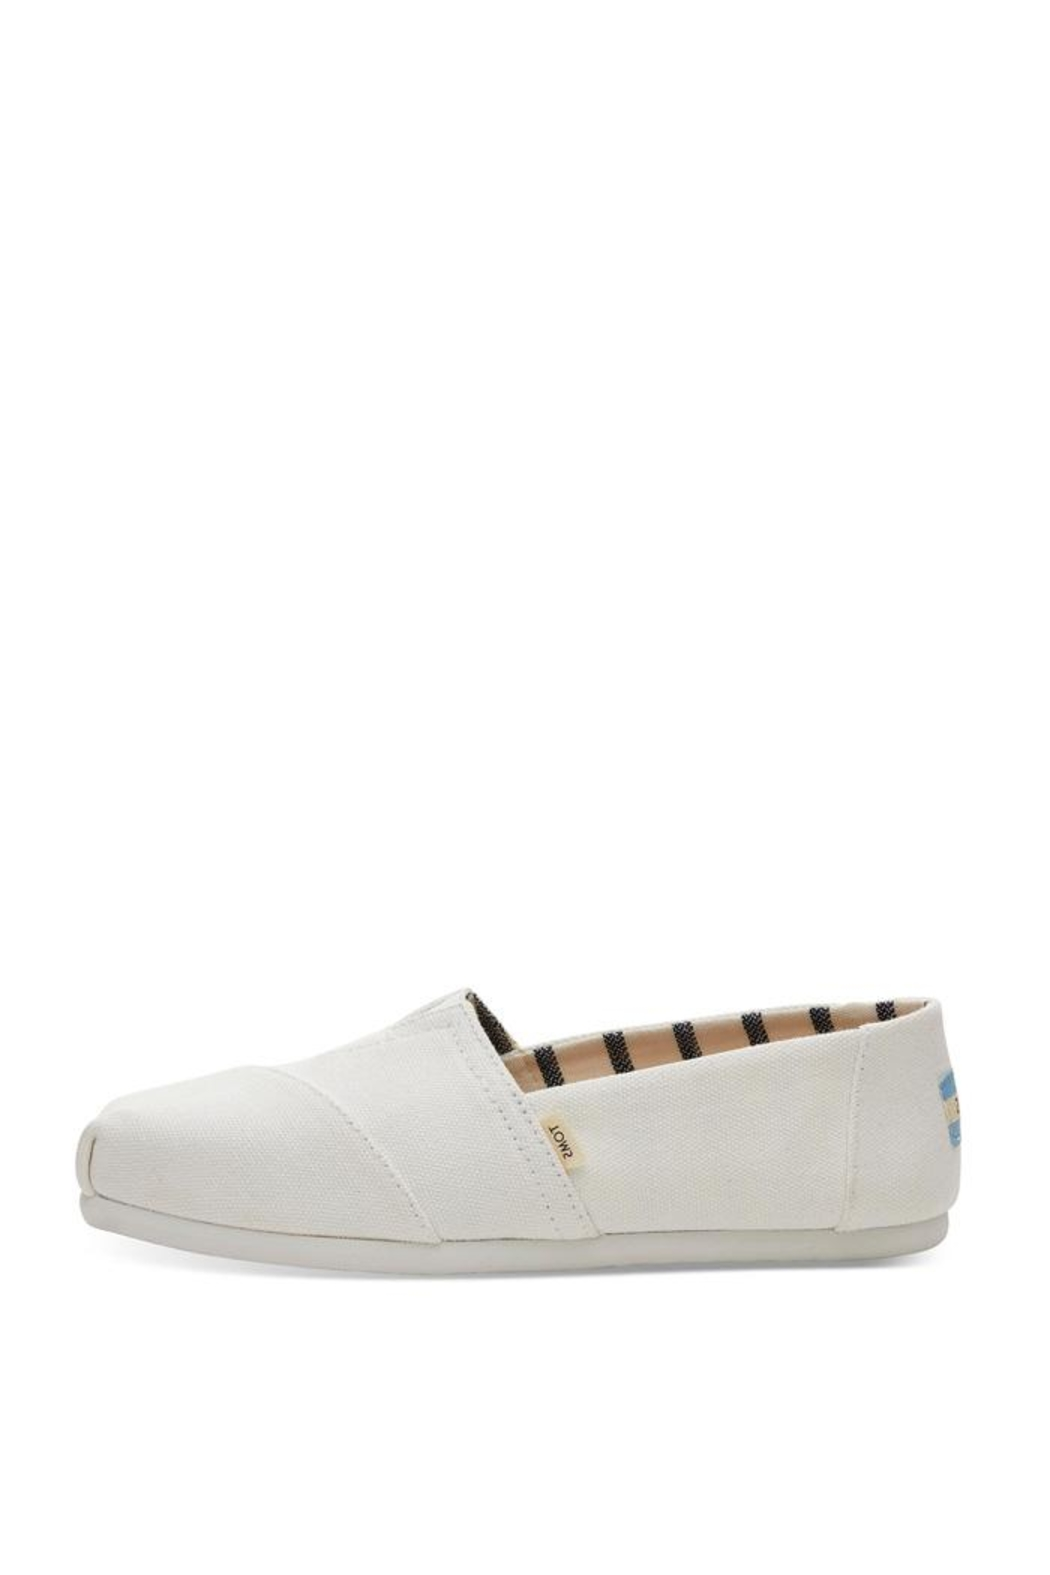 TOMS White Classic Toms - Front Full Image